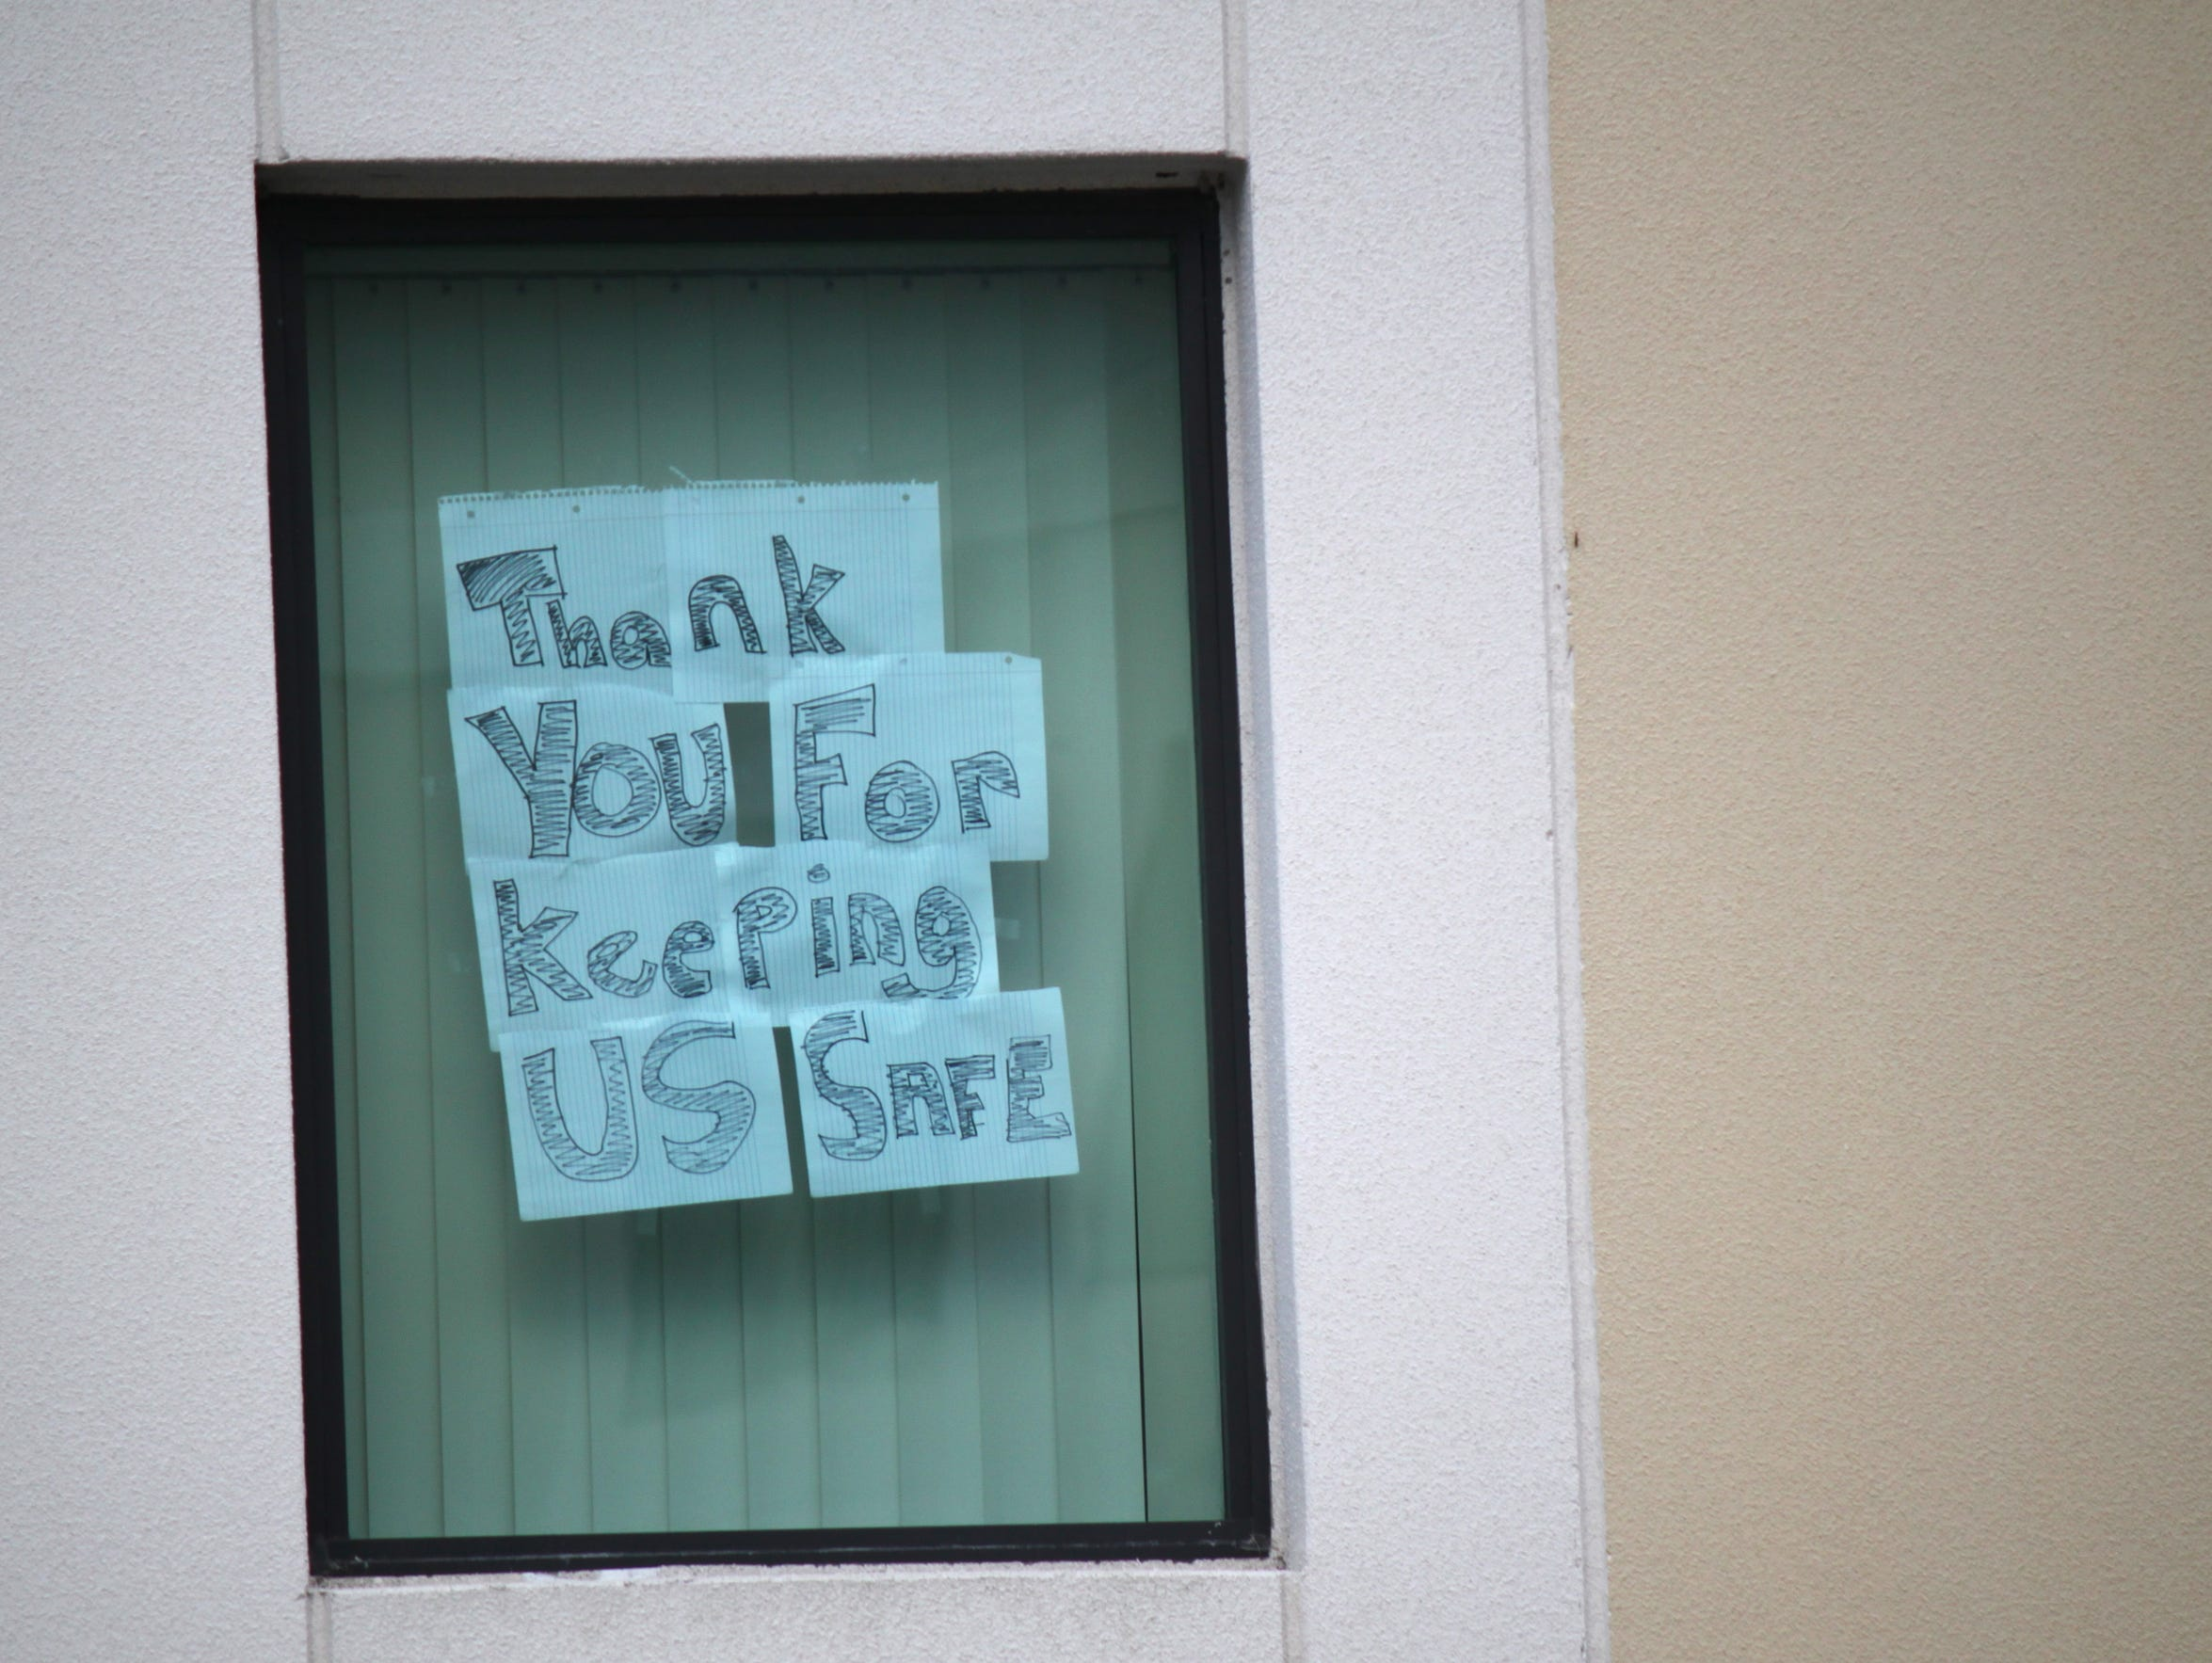 A sign posted in a Tower 1 window after the near tragedy.